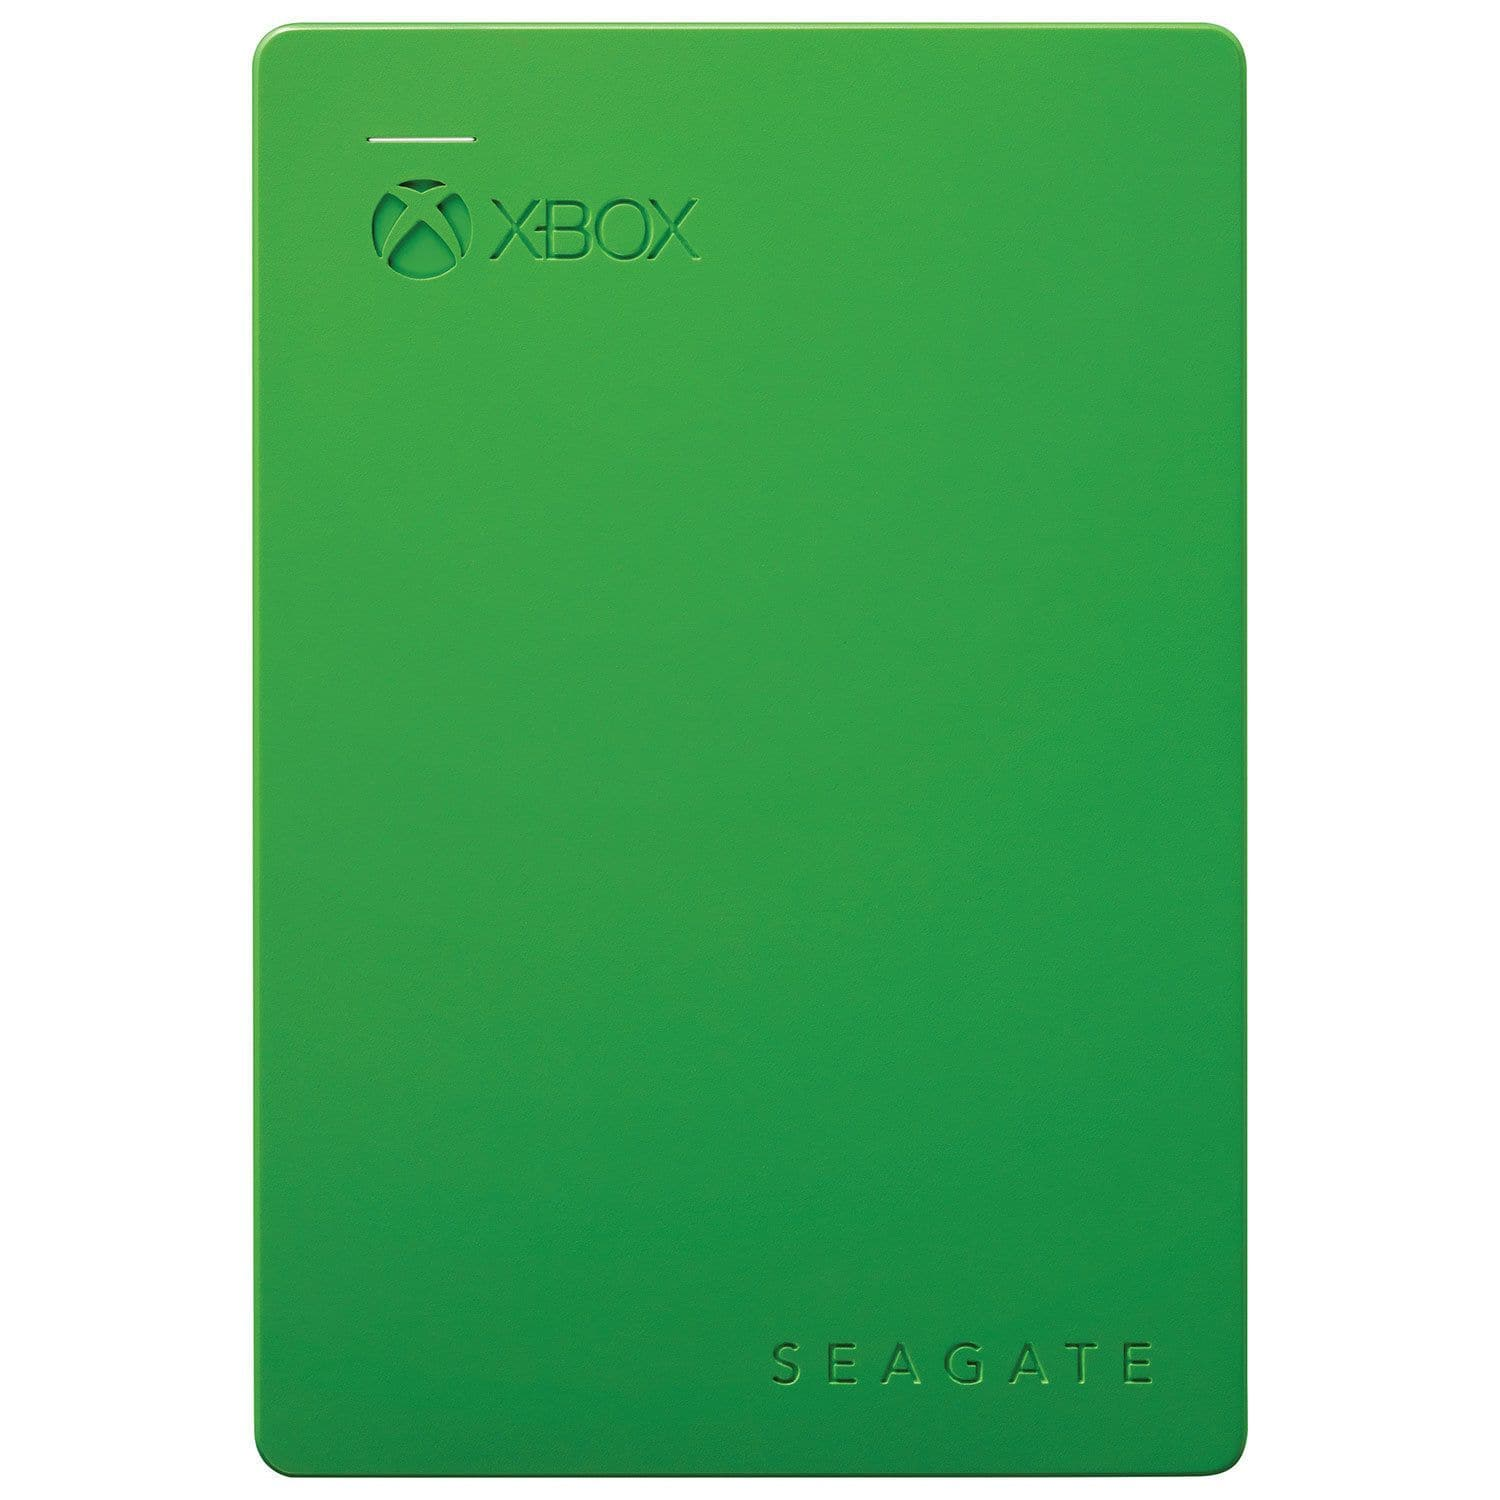 "Seagate 4TB 2.5"" Portable External USB 3.0 Game Drive for Xbox (STEA4000402)"